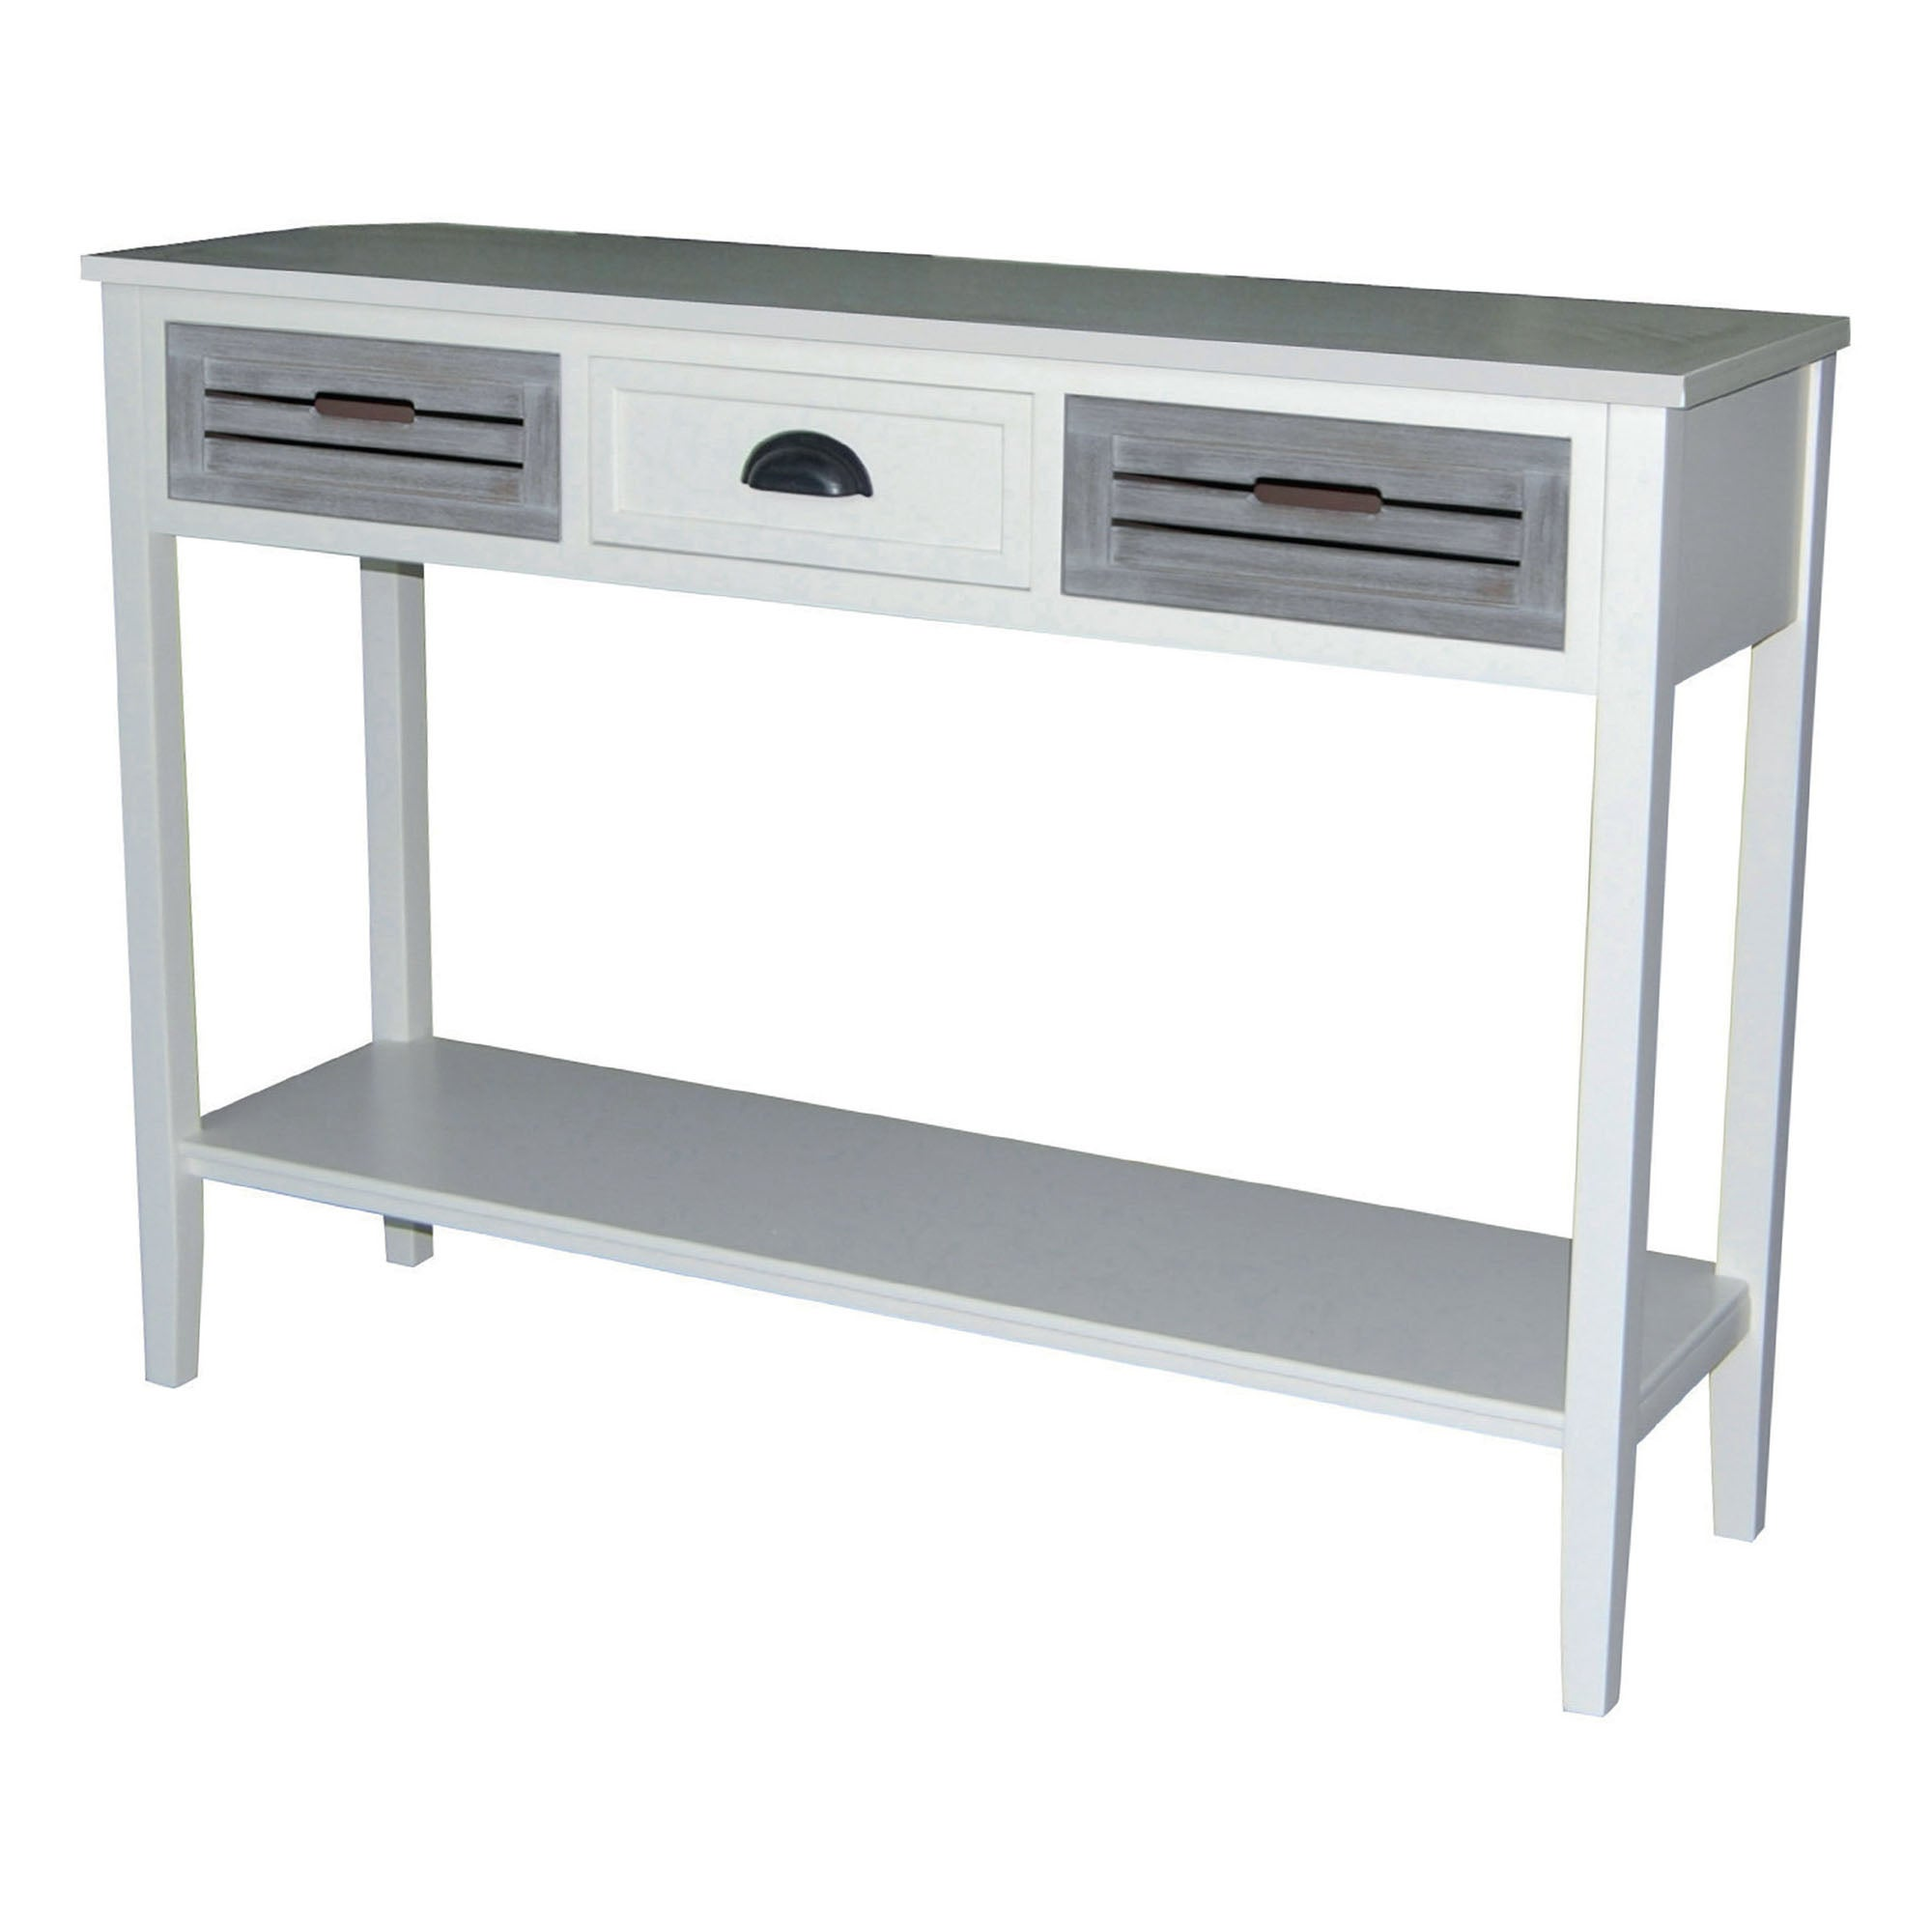 Atlanta white 3 drawer console table dunelm - Dunelm console table ...